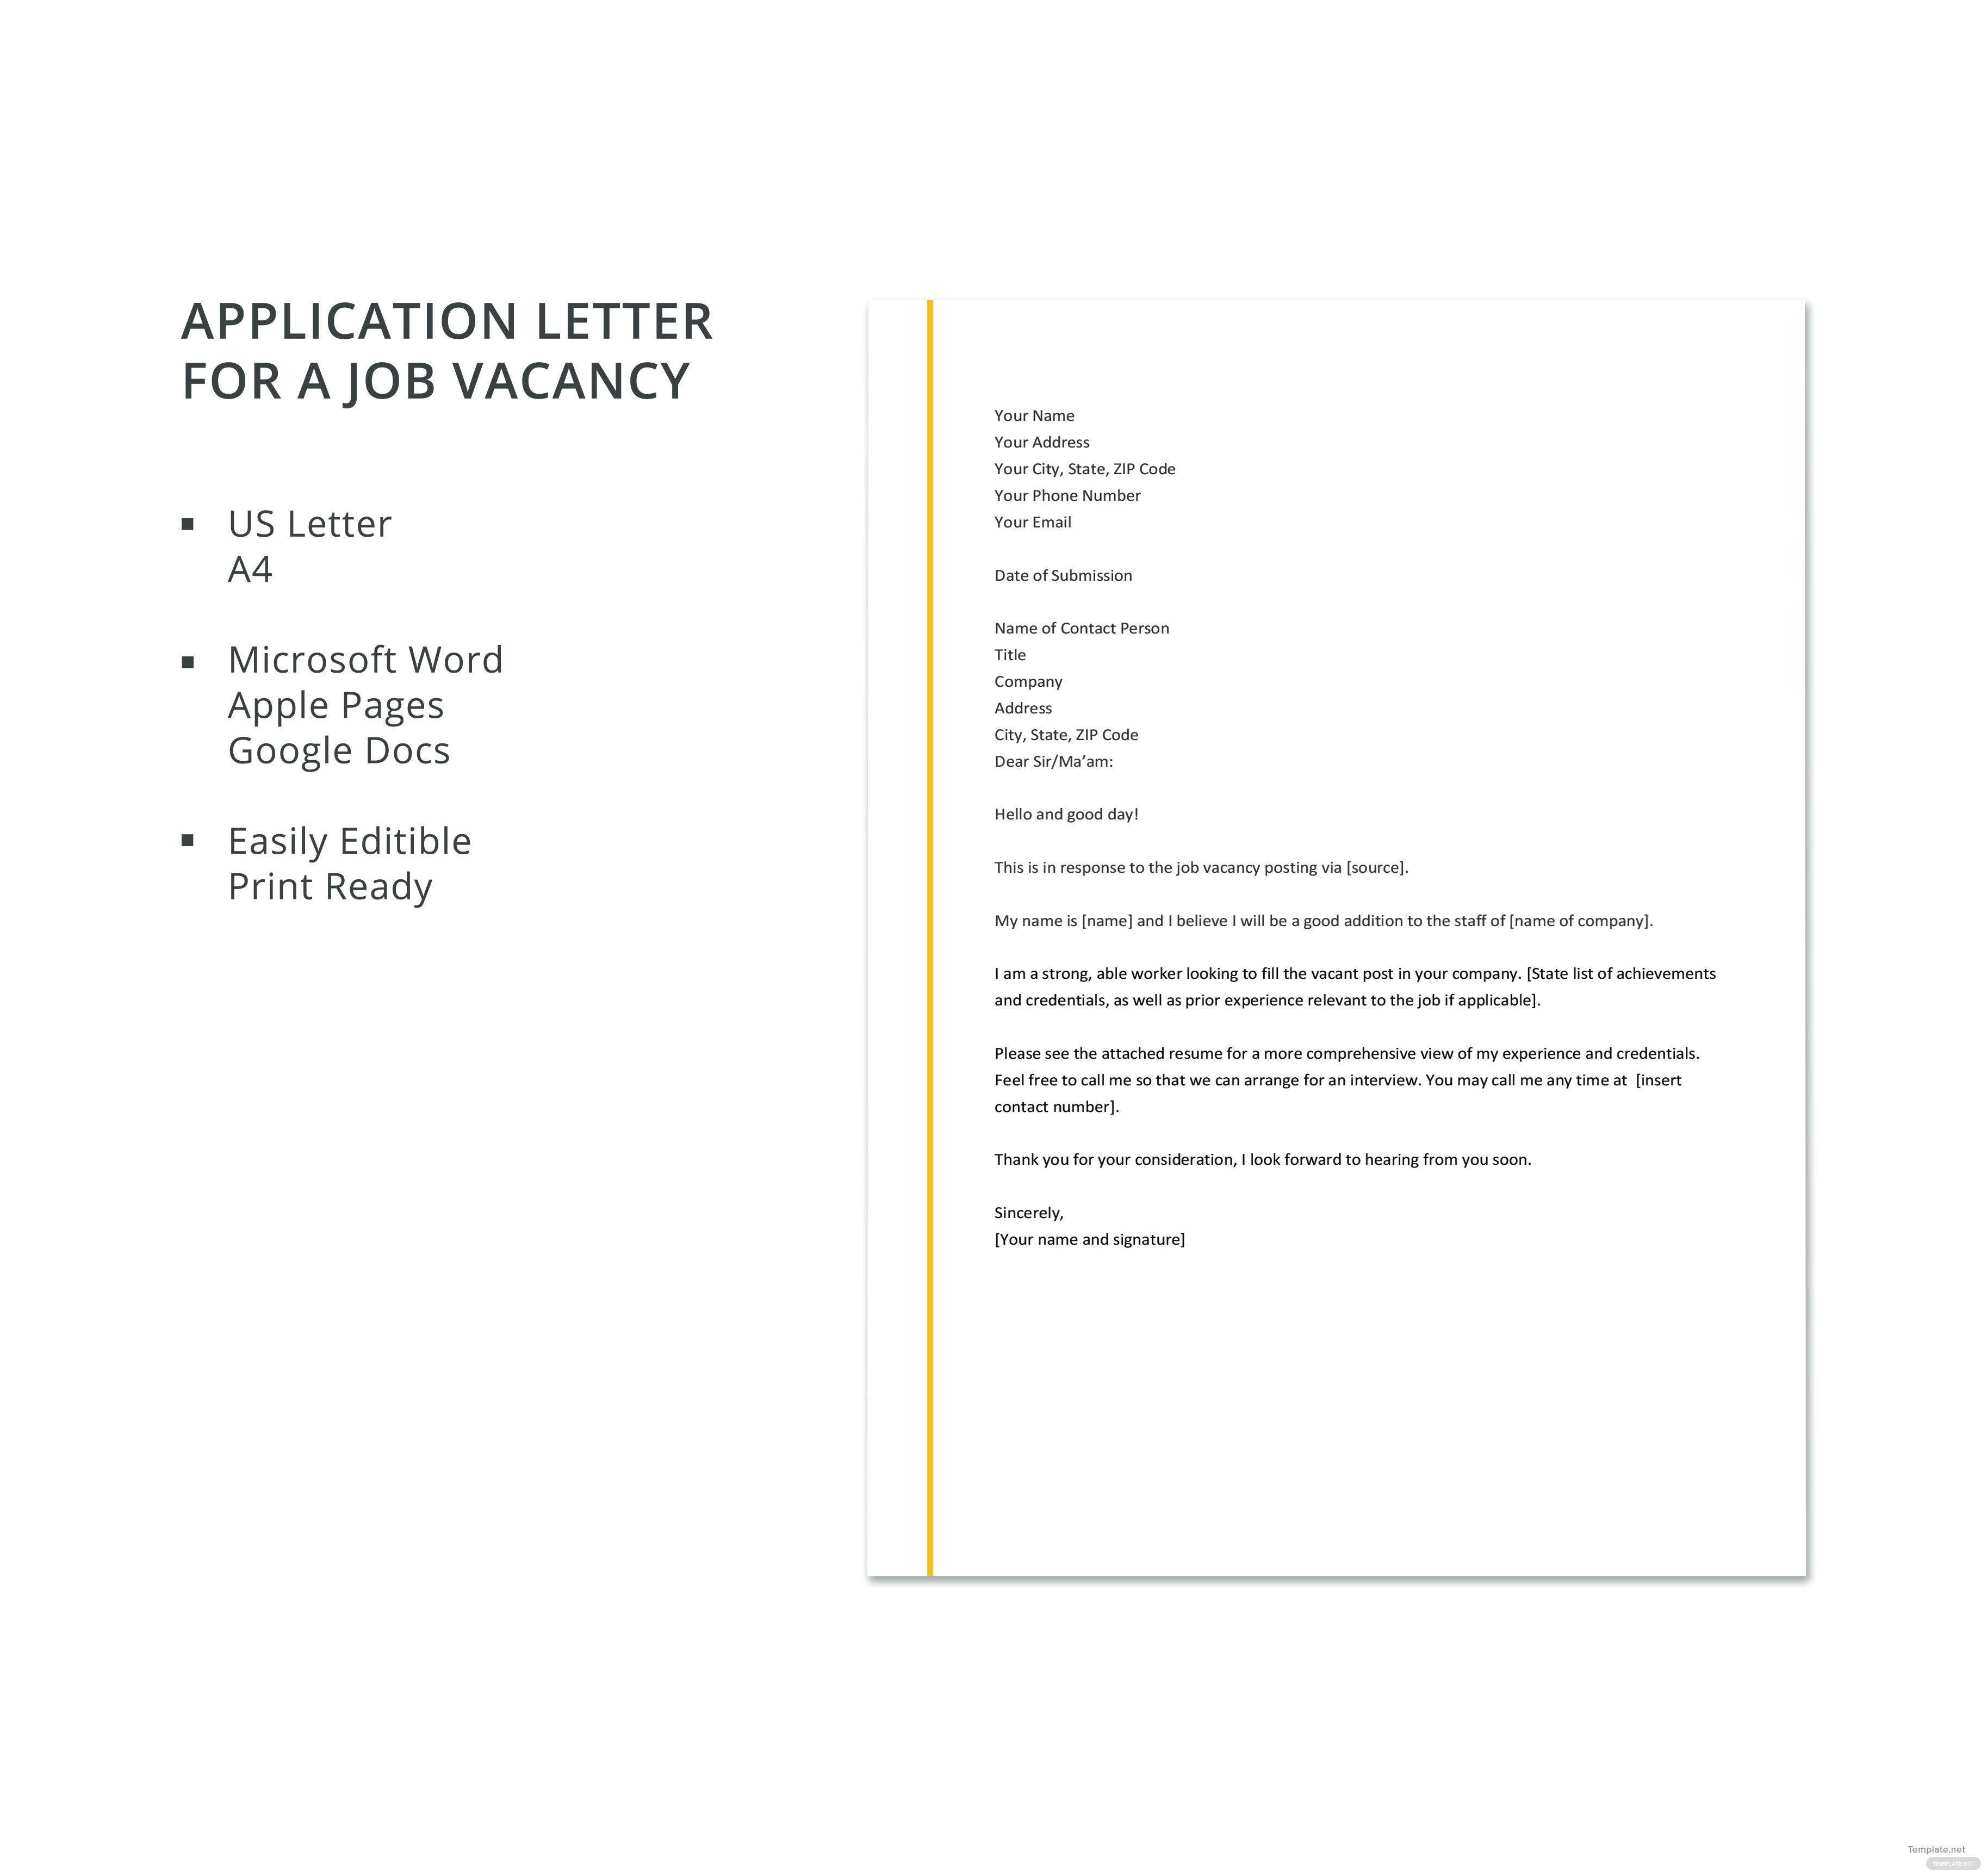 application letter format for job vacancy